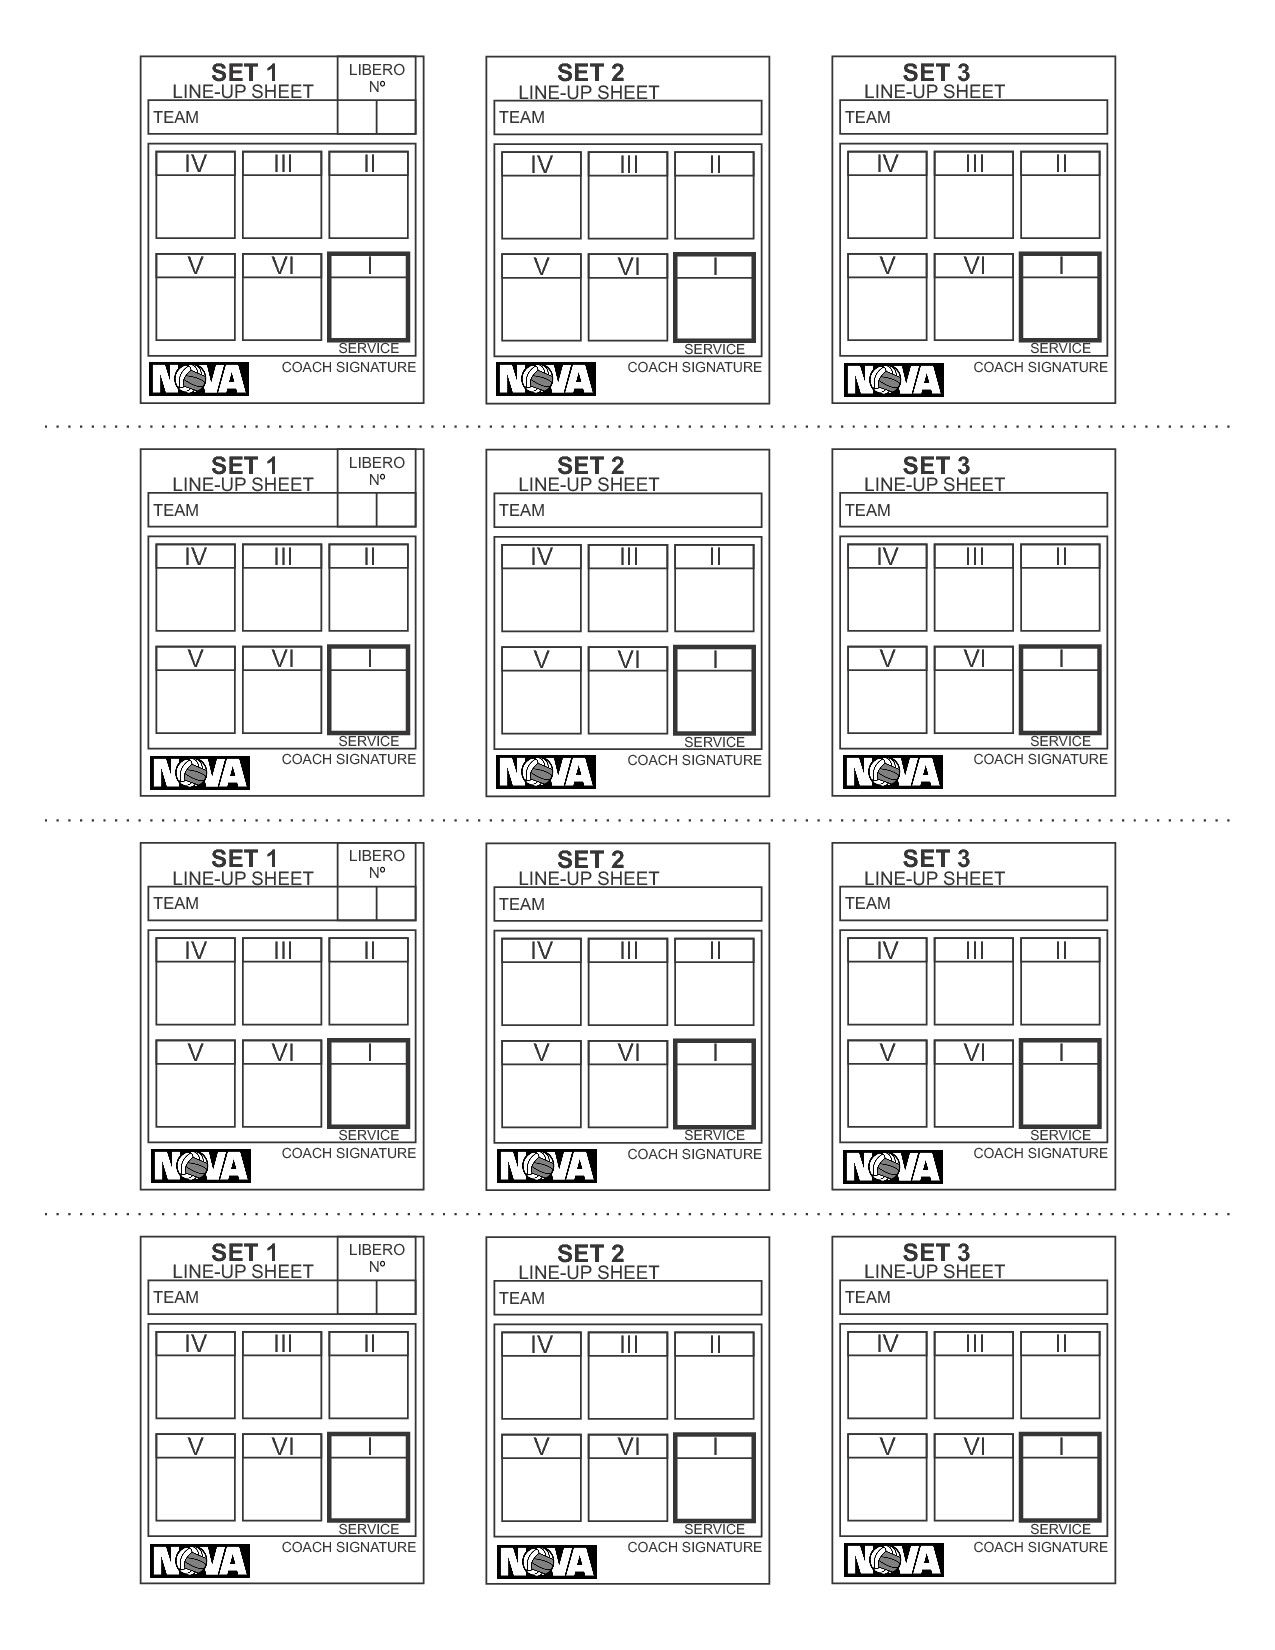 Rotation Cards From Volleyball Lineup Sheet Source Pinterest De Volleyball Lineup Sheet Don T F In 2020 Coaching Volleyball Volleyball Practice Plans